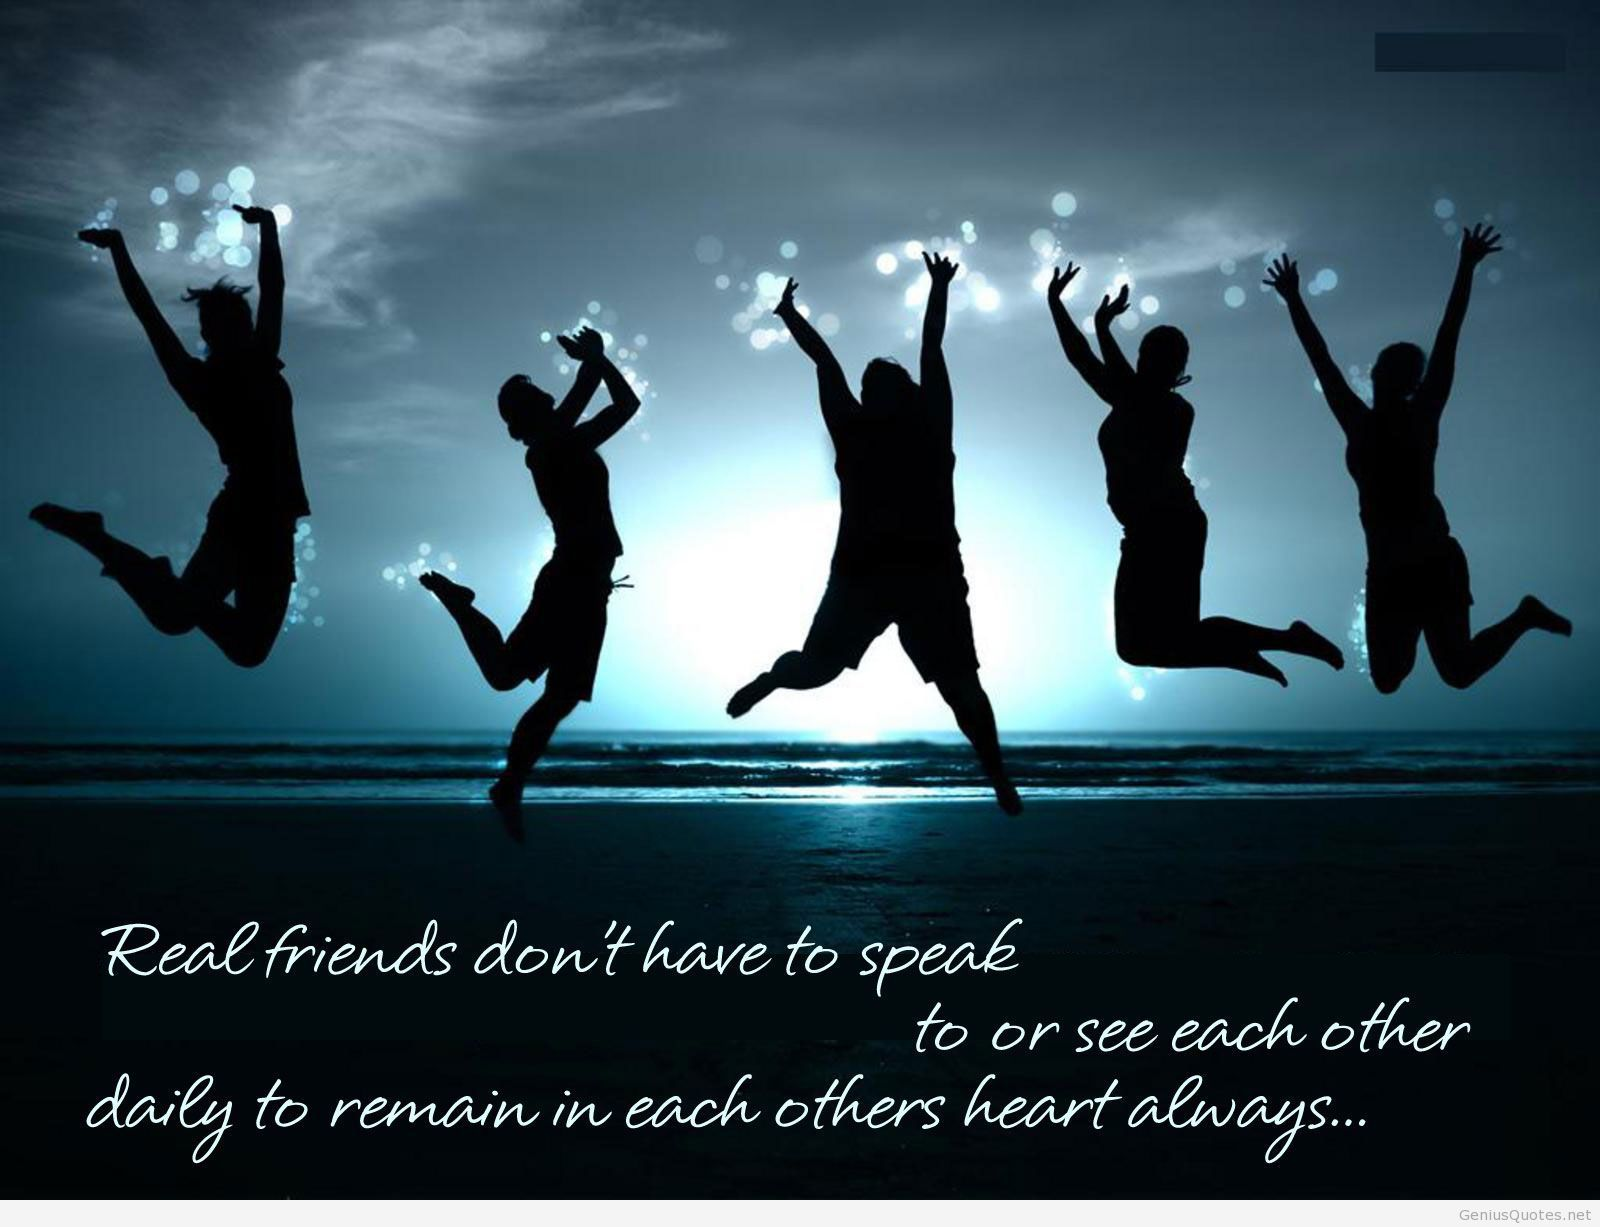 Bff Quotes Wallpapers Top Free Bff Quotes Backgrounds